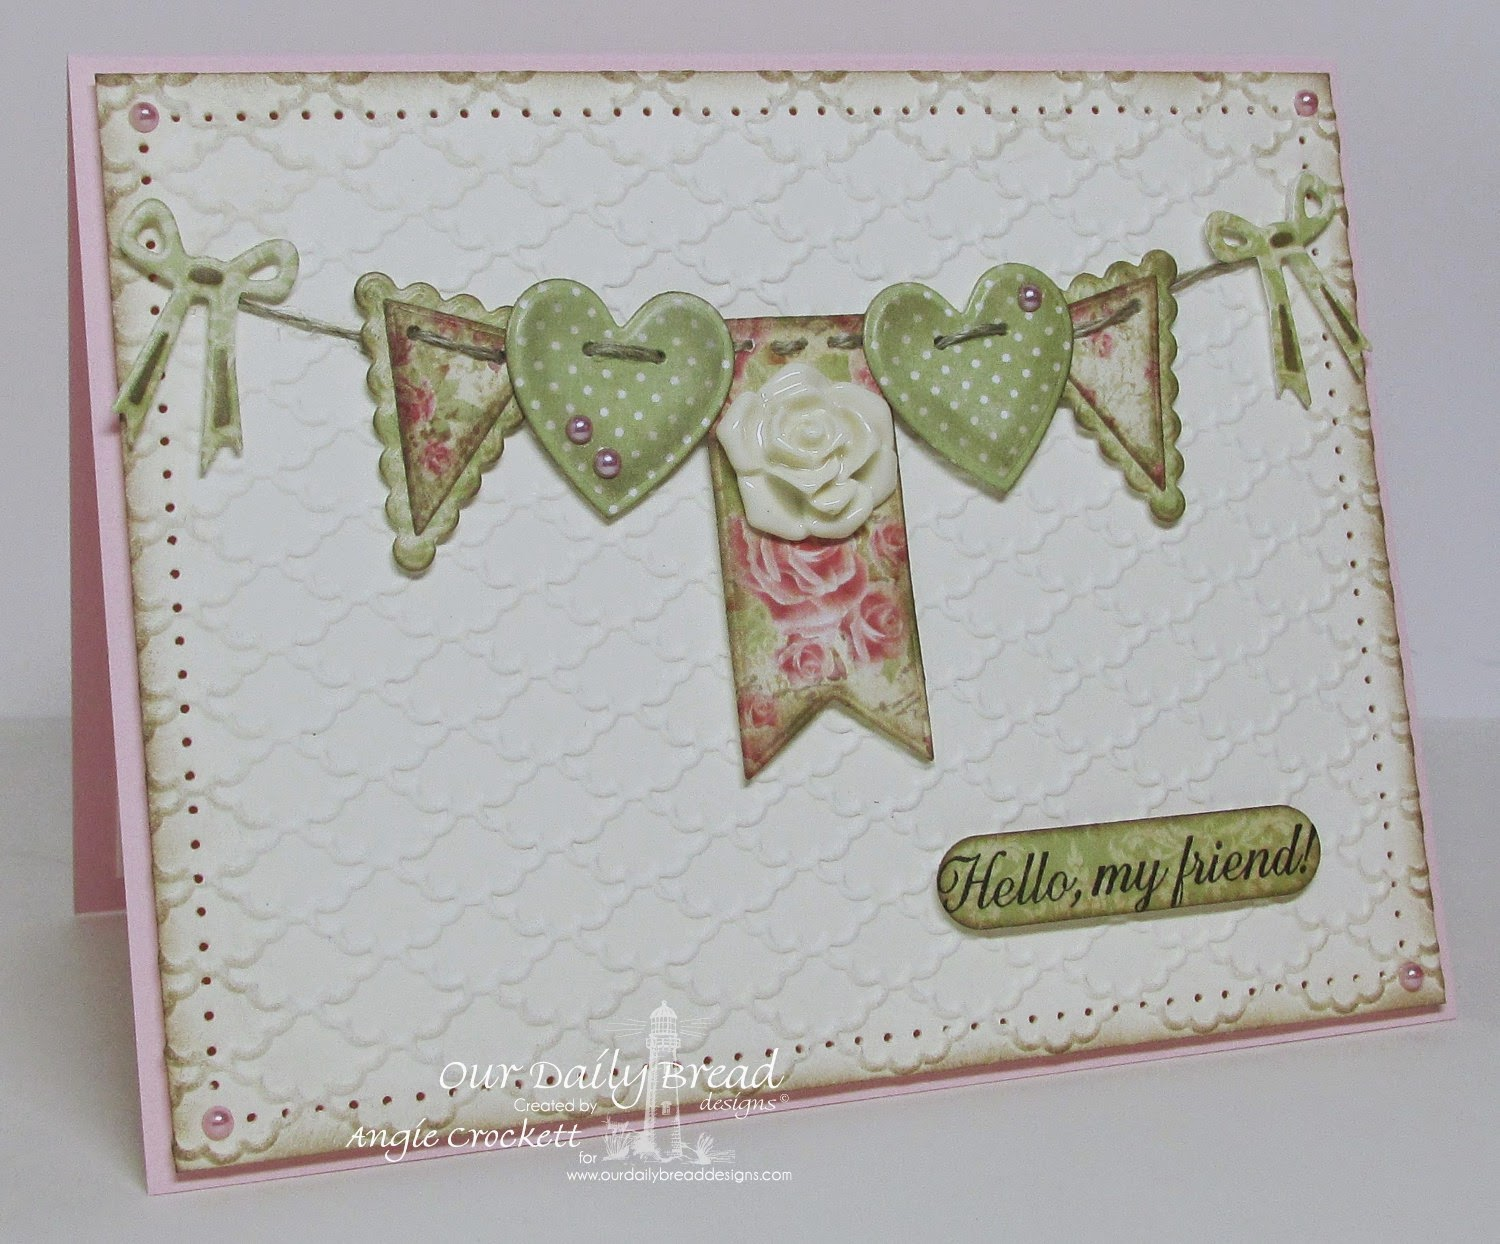 ODBD Ornate Border Sentiments, ODBD Ornate Hearts Die Set, ODBD Pennant Swag Die, ODBD Pennants Die Set, Card Designer Angie Crockett